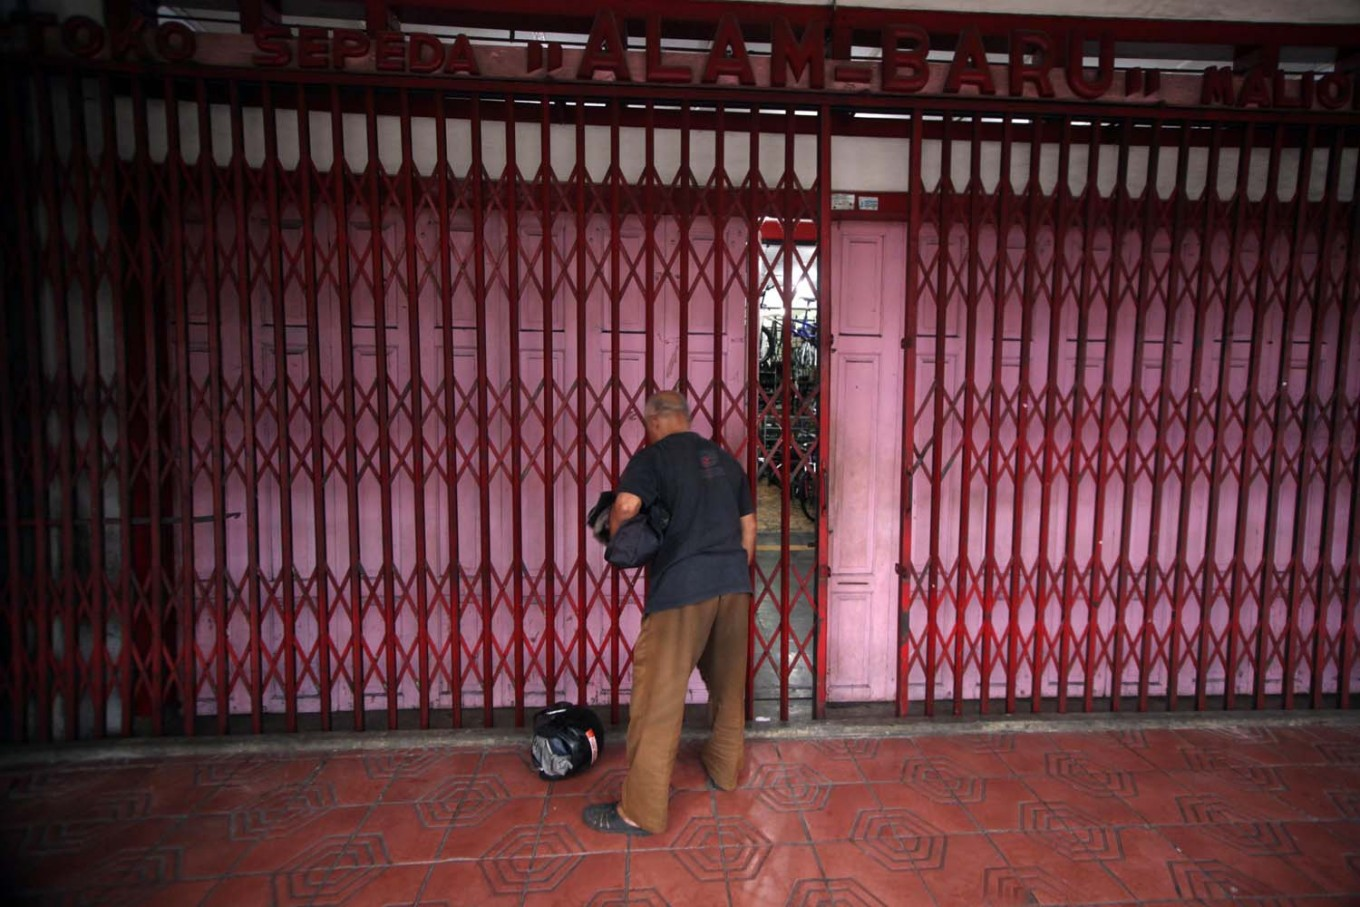 A shop attendant closes a store gate in the afternoon. JP/Boy T. Harjanto